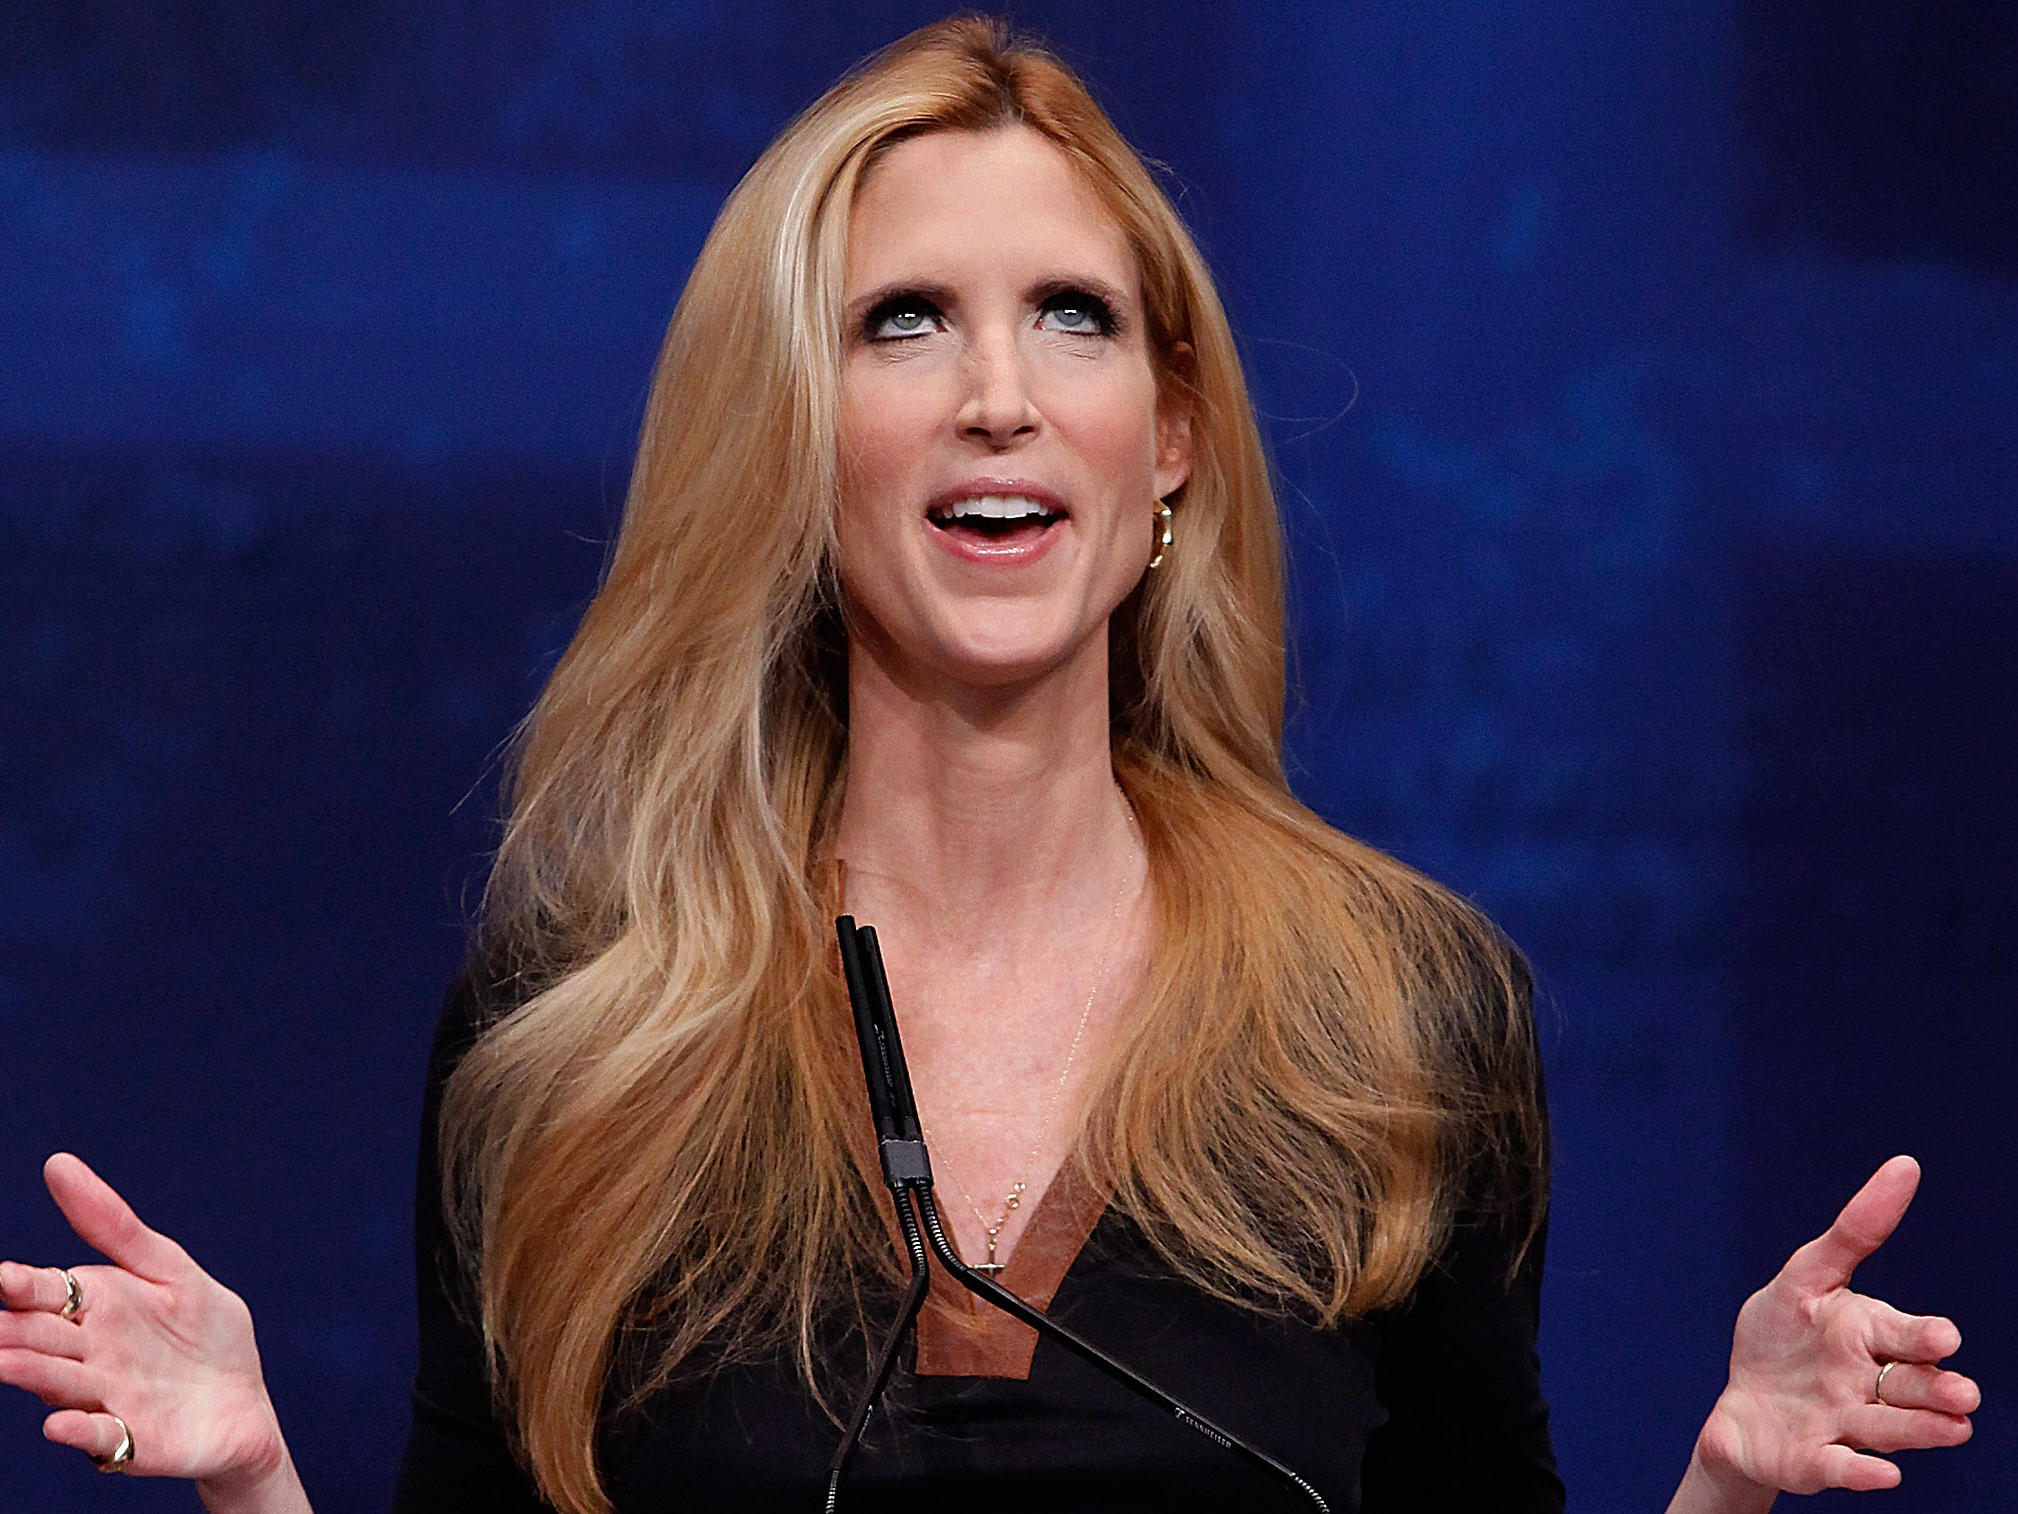 Hundreds rally in Berkeley after Coulter talk canceled